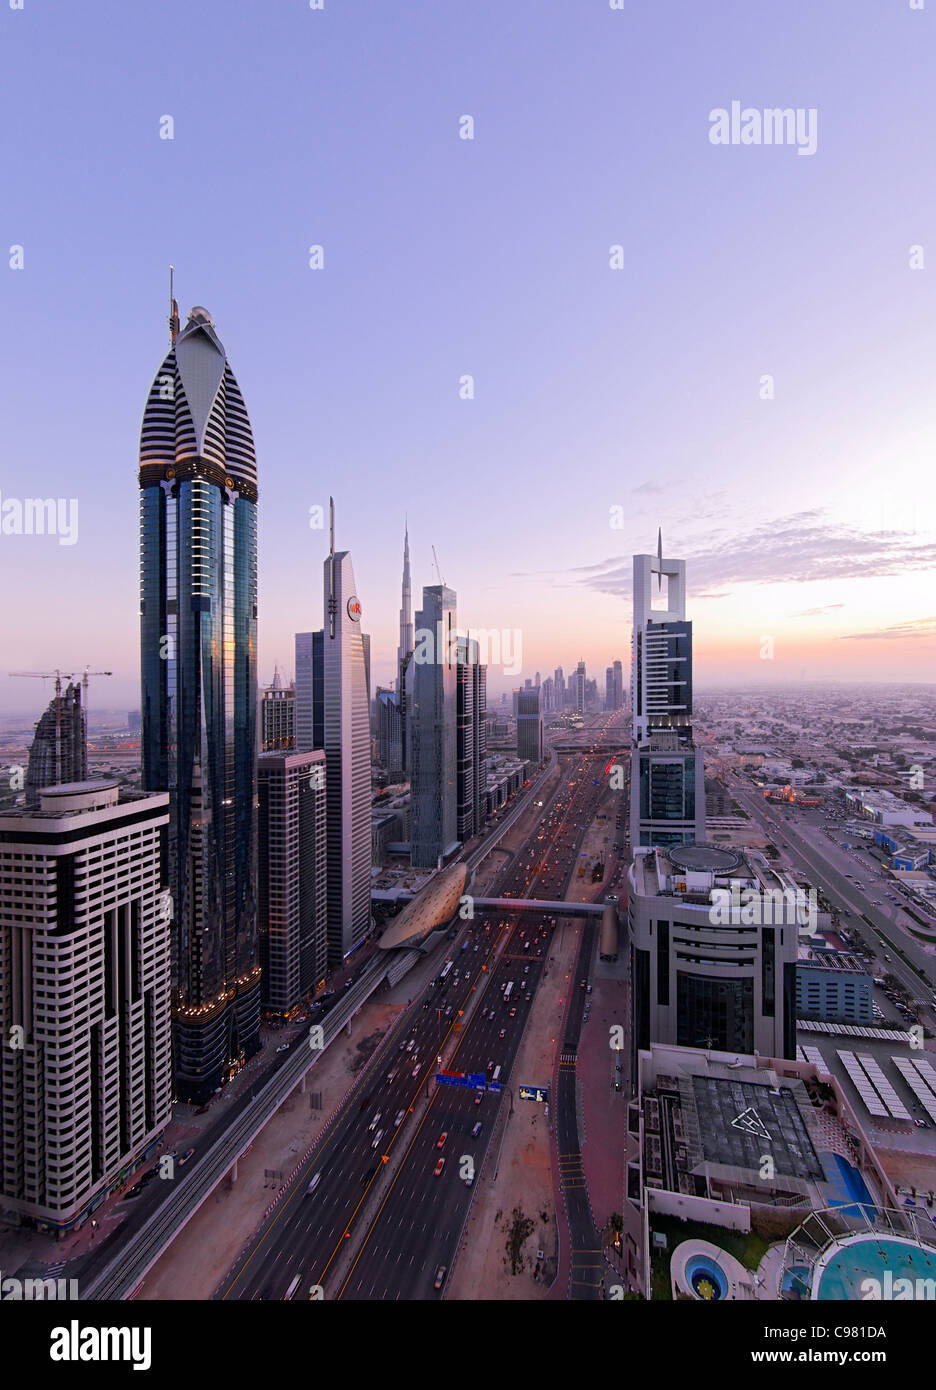 View of downtown Dubai, towers, skyscrapers, hotels, modern architecture, Sheikh Zayed Road, Financial District, - Stock Image